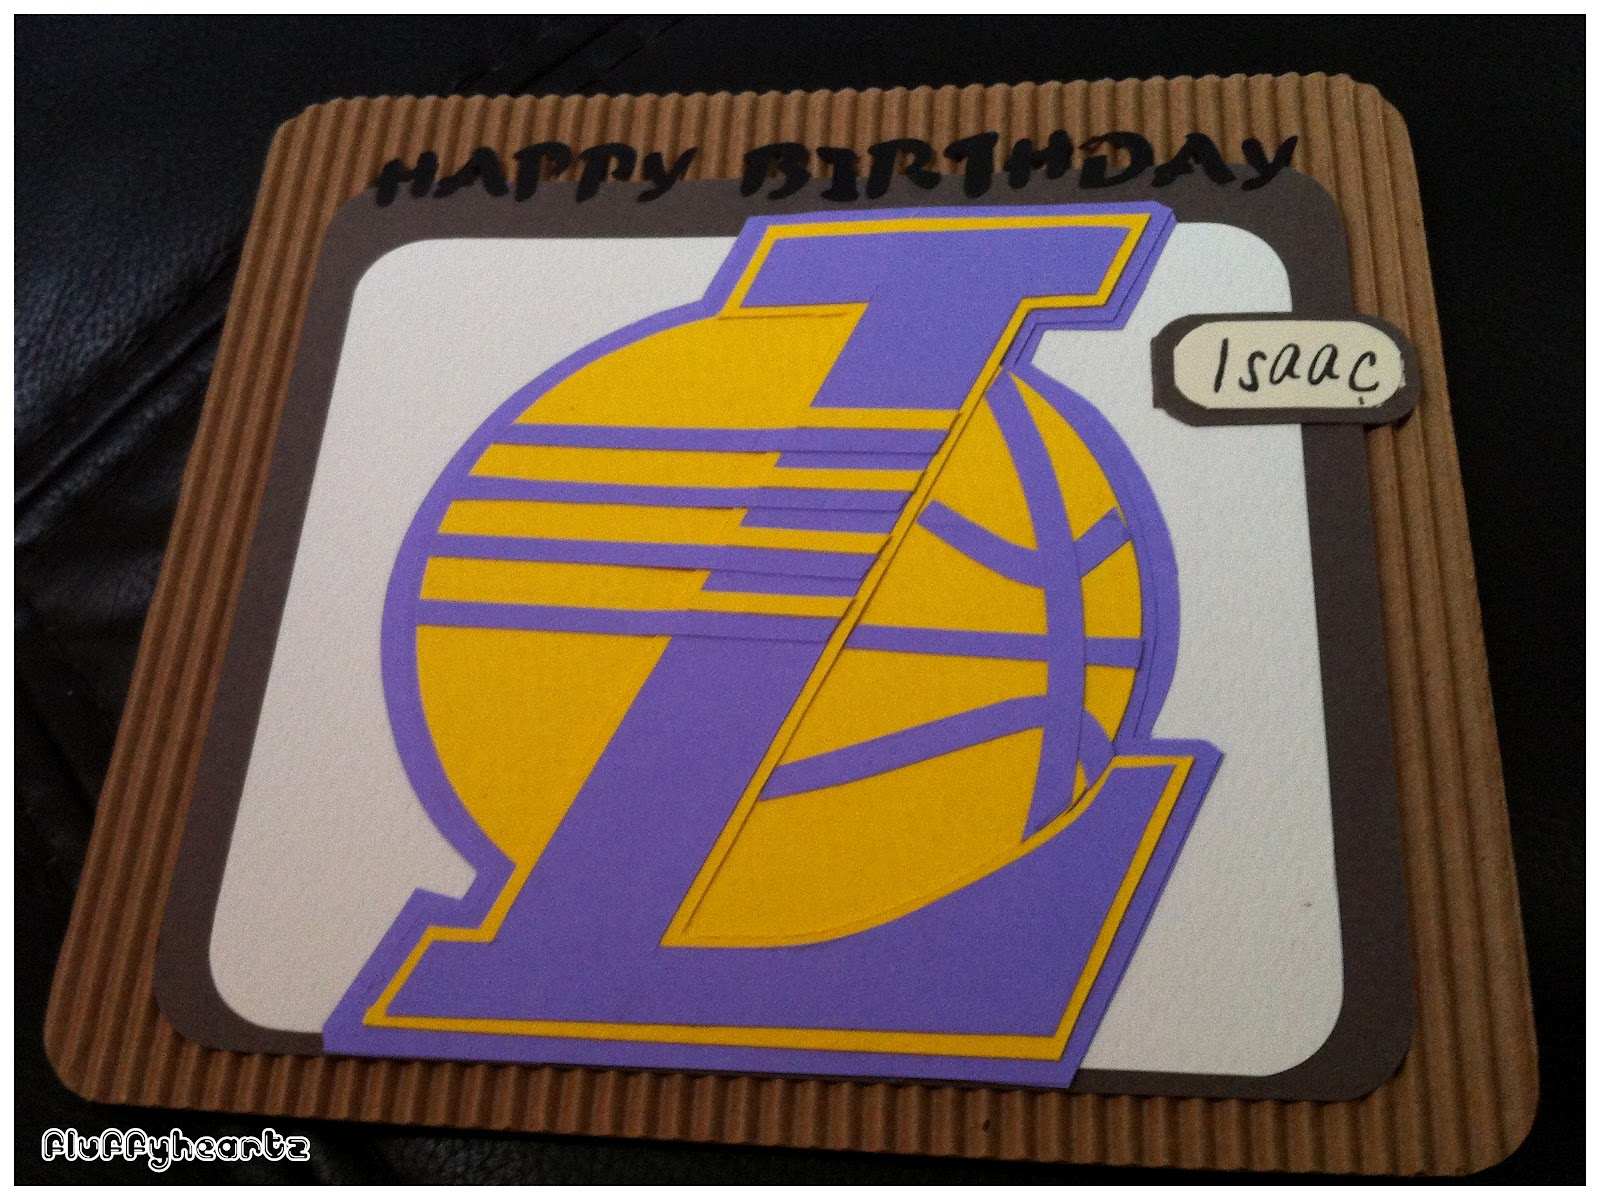 fluffyheartz ♥ birthday cards for lakers basketball team supporter, Birthday card